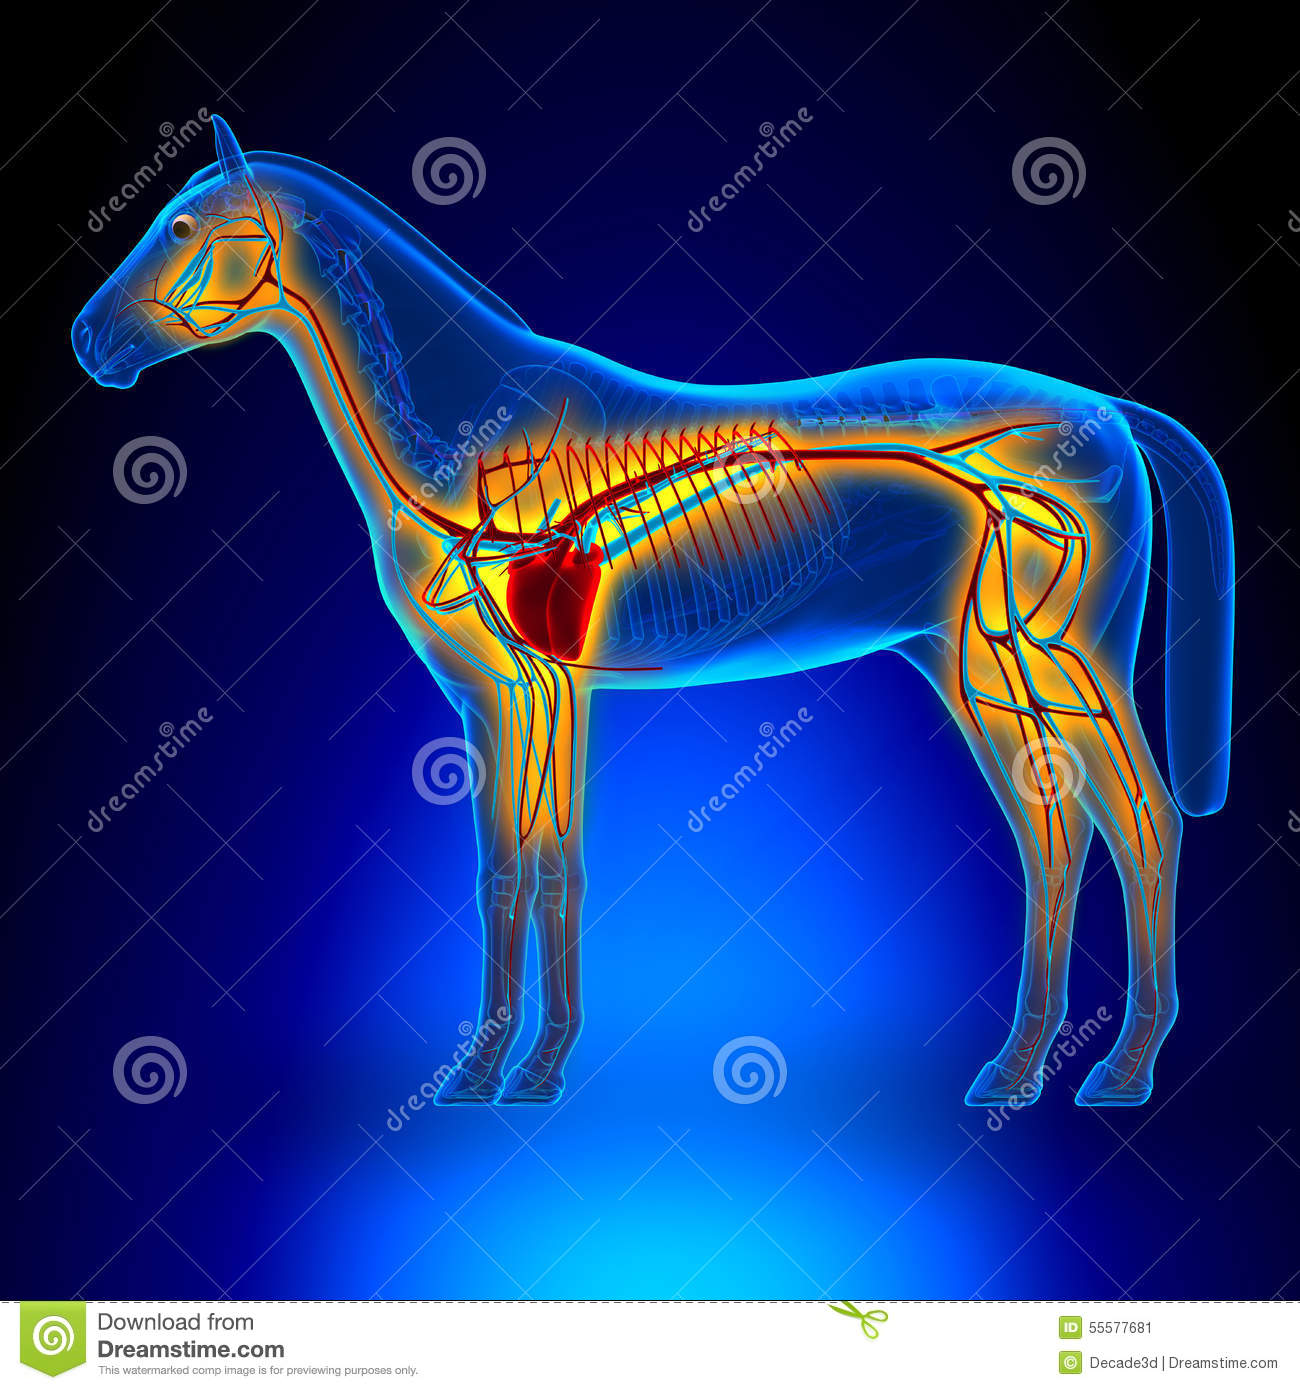 Heart and circulatory system stock vector illustration of horse heart circulatory system horse equus anatomy on blue b stock image ccuart Gallery